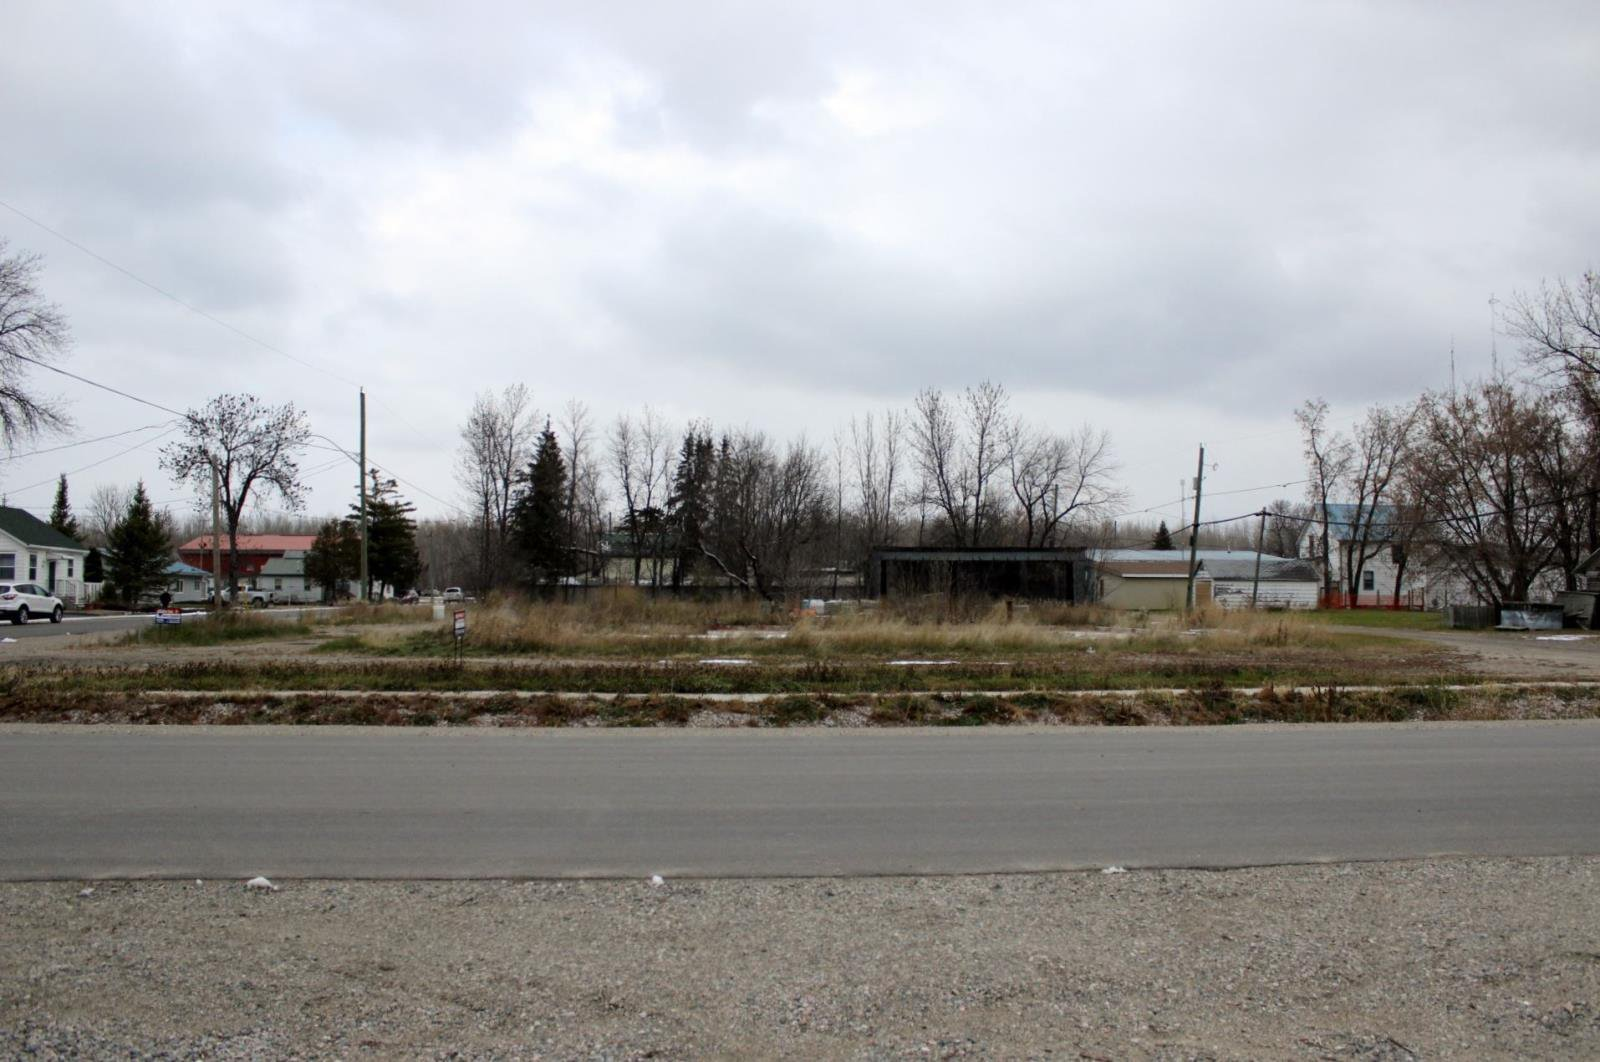 Main Photo: 308 FIFTH ST in RAINY RIVER: Vacant Land for sale : MLS®# TB202674